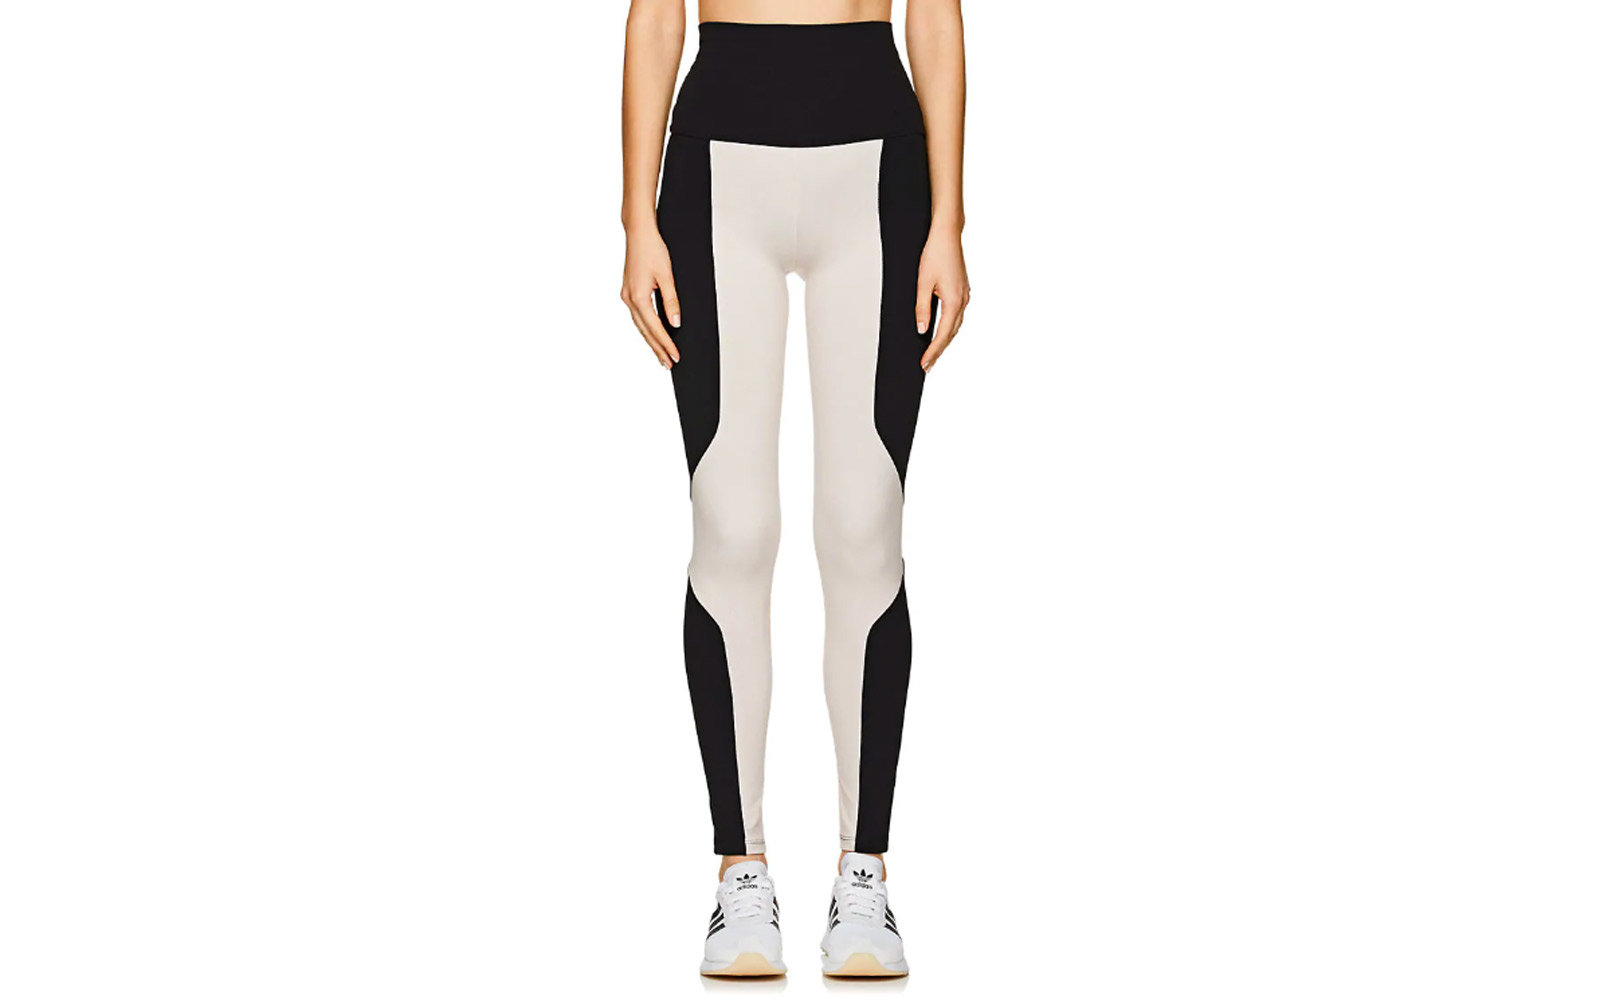 93b31b9810d7d The Best Leggings Brands to Shop in 2019 | Travel + Leisure